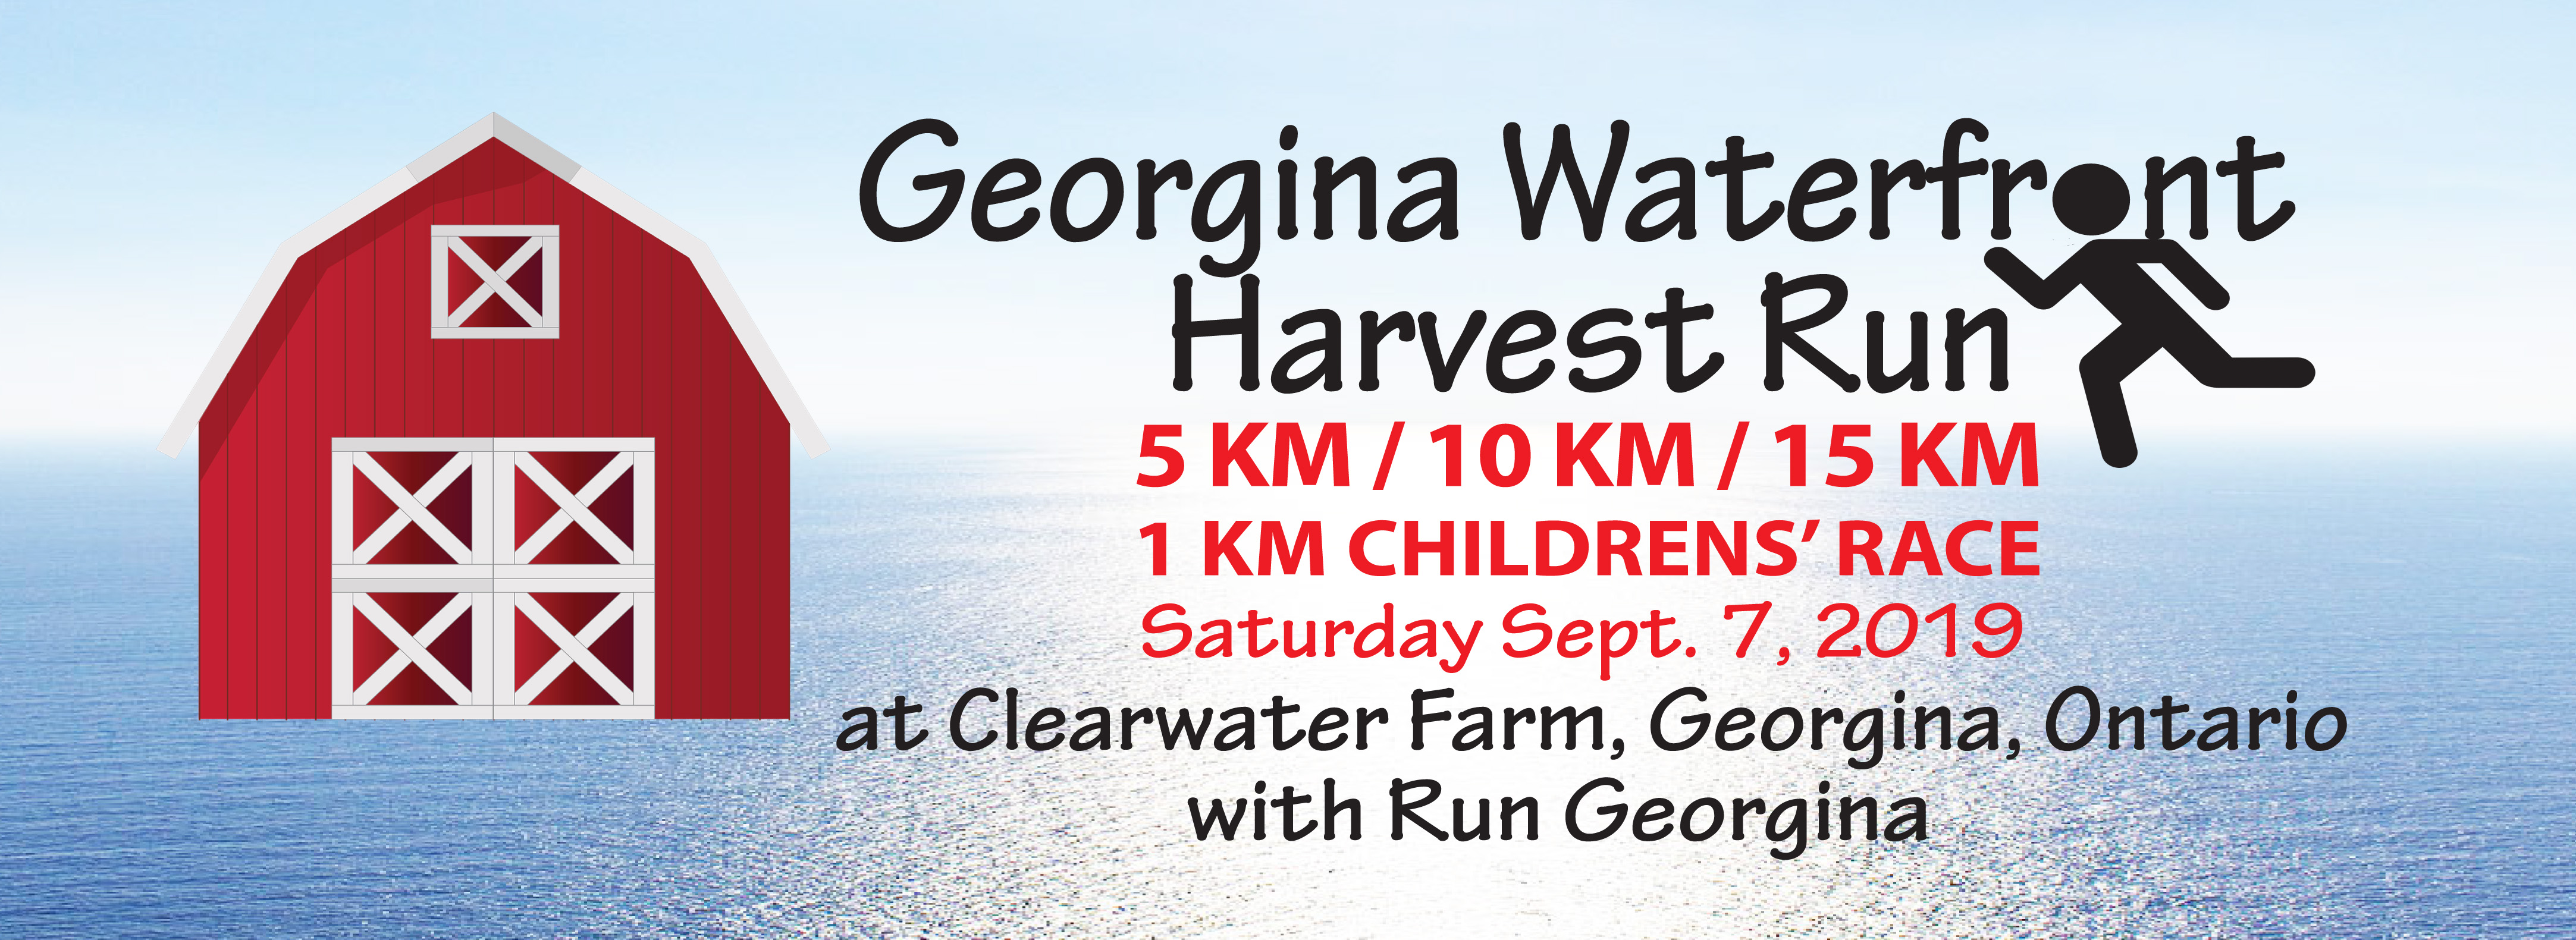 Georgina Waterfront Harvest Run